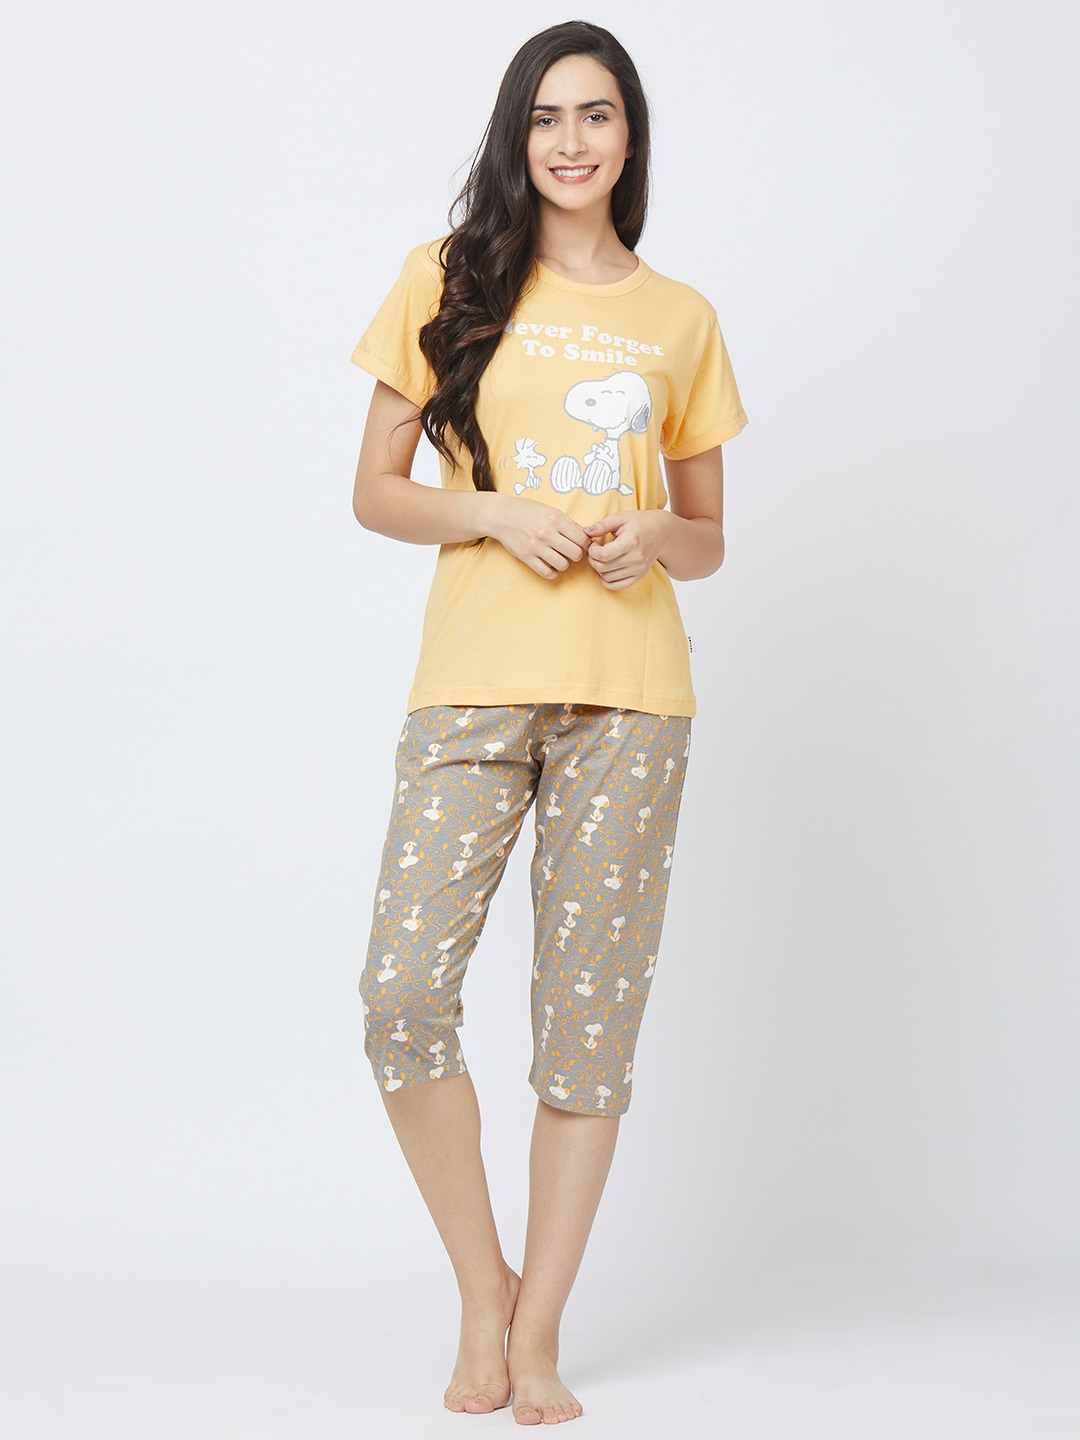 aef85909aab Women Loungewear   Nightwear - Buy Women Nightwear   Loungewear online -  Myntra